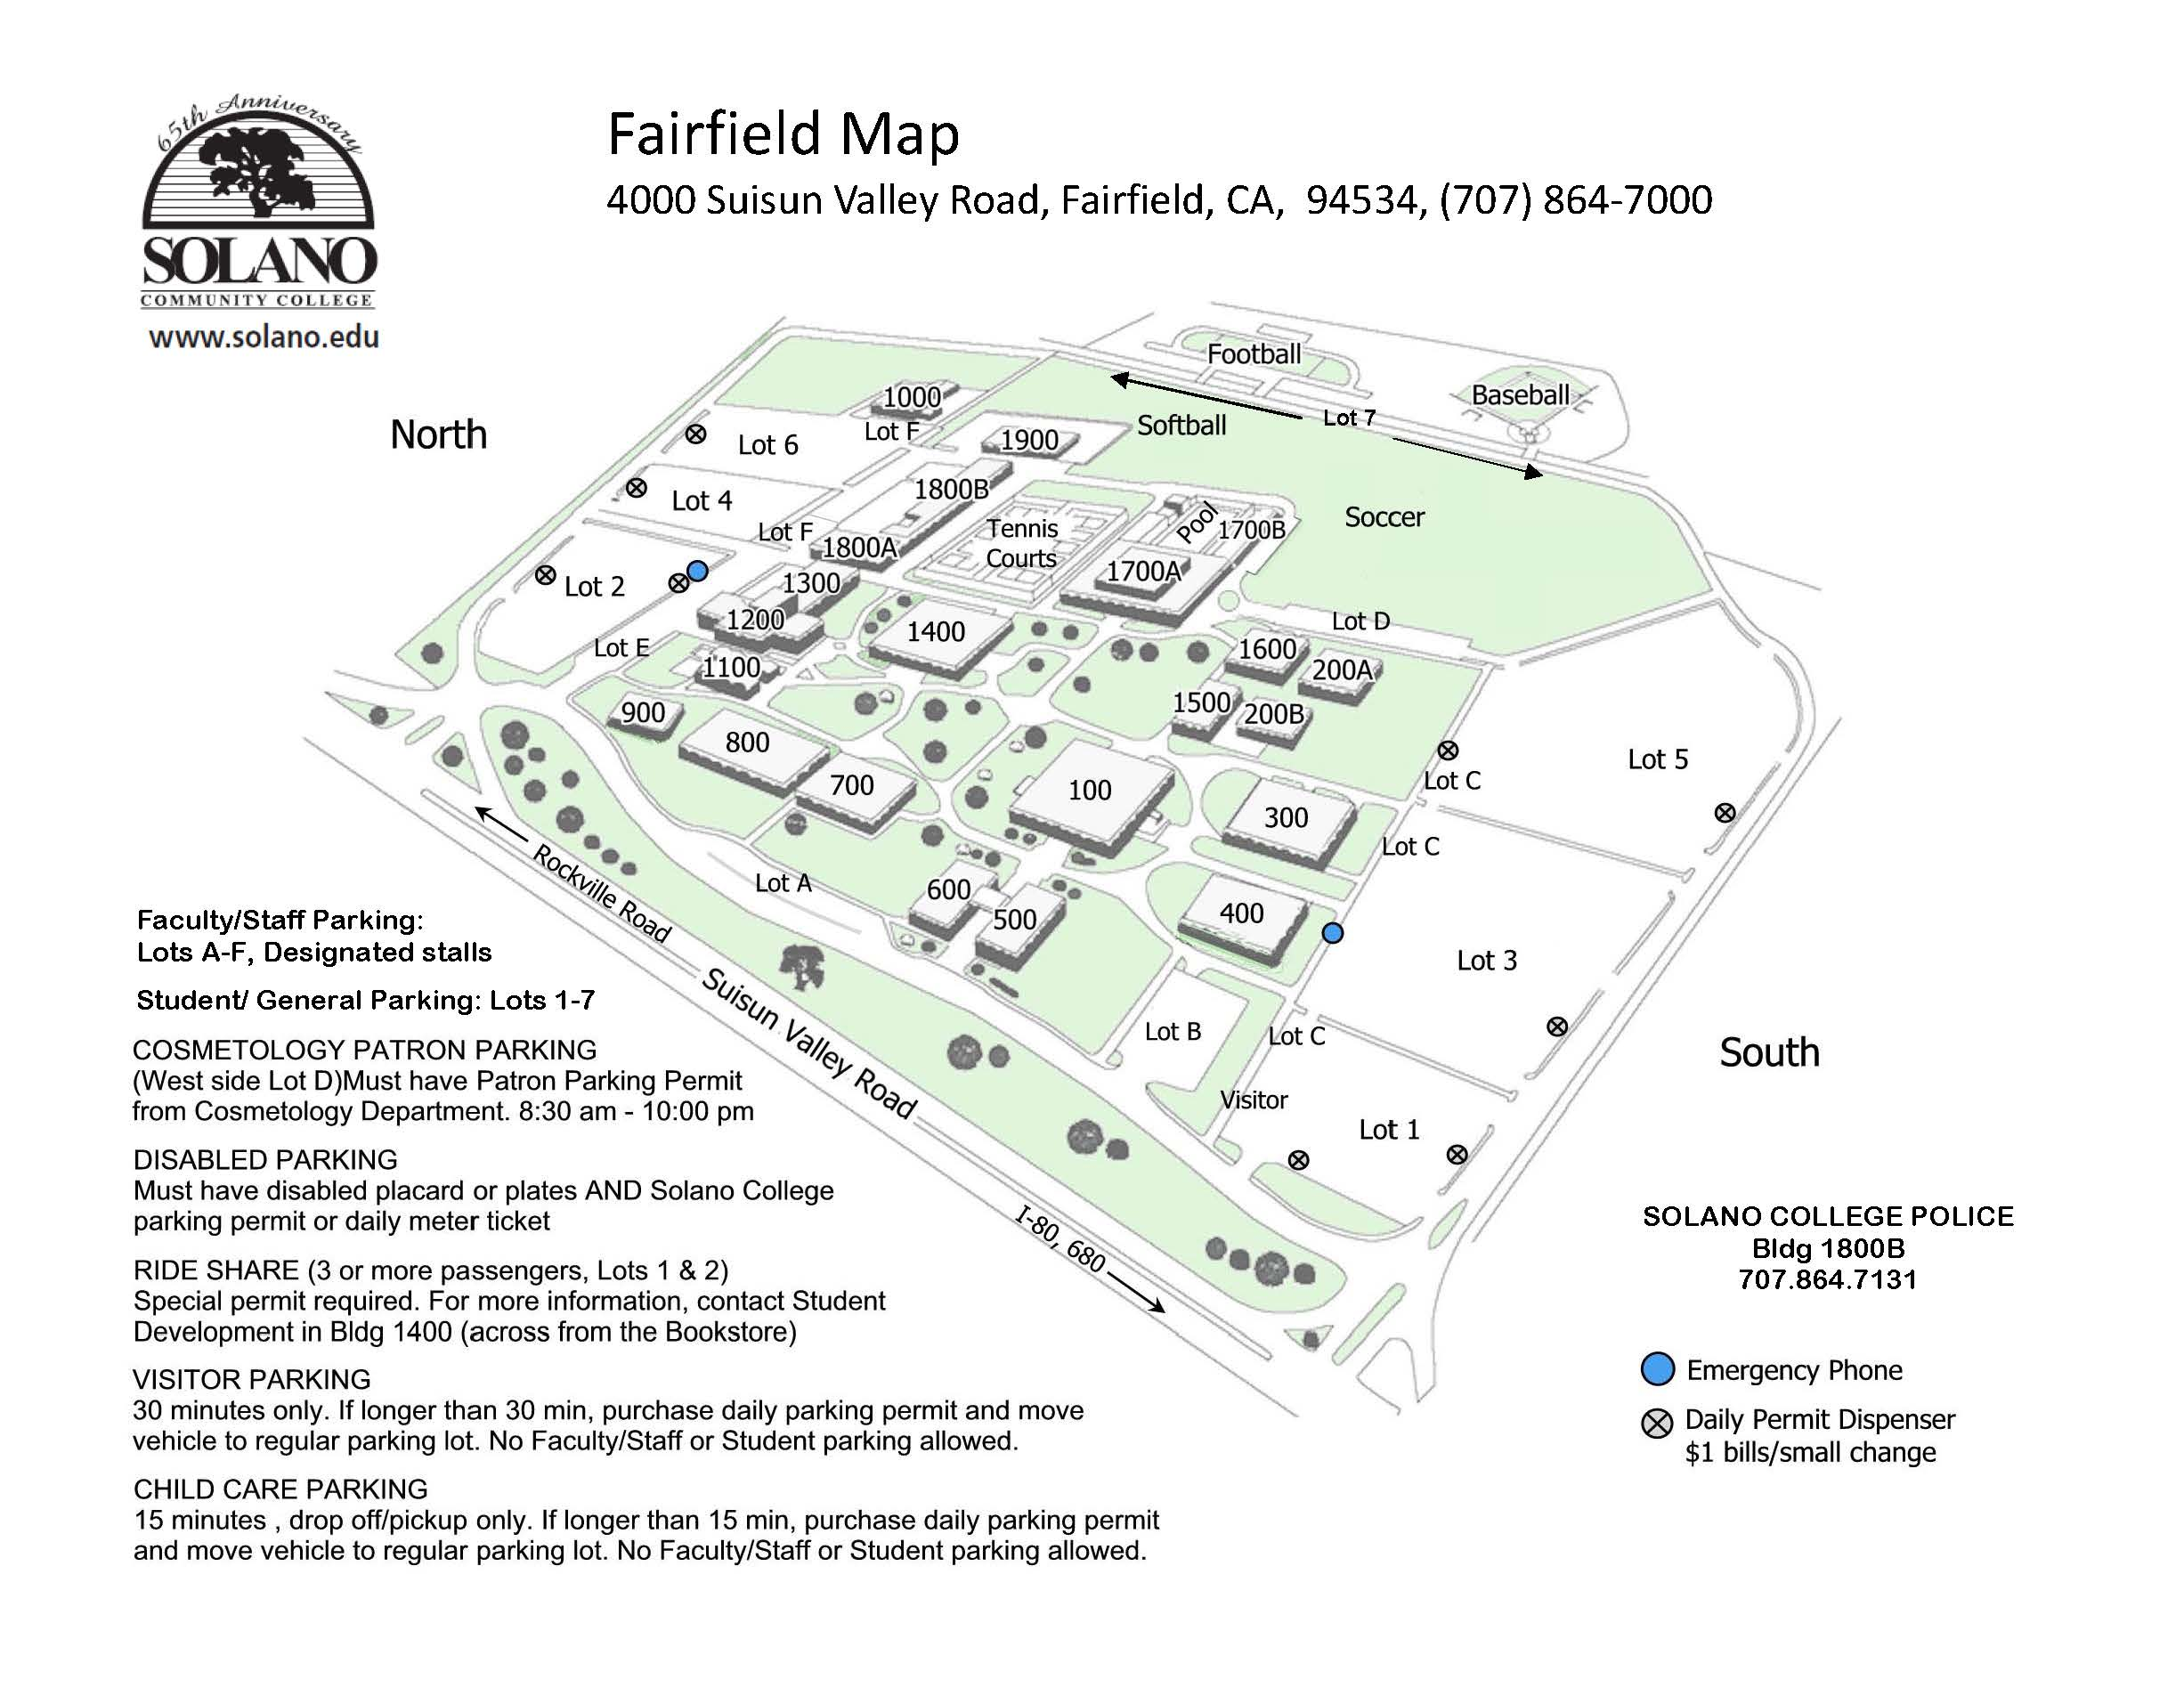 Solano Community College Fairfield Locations